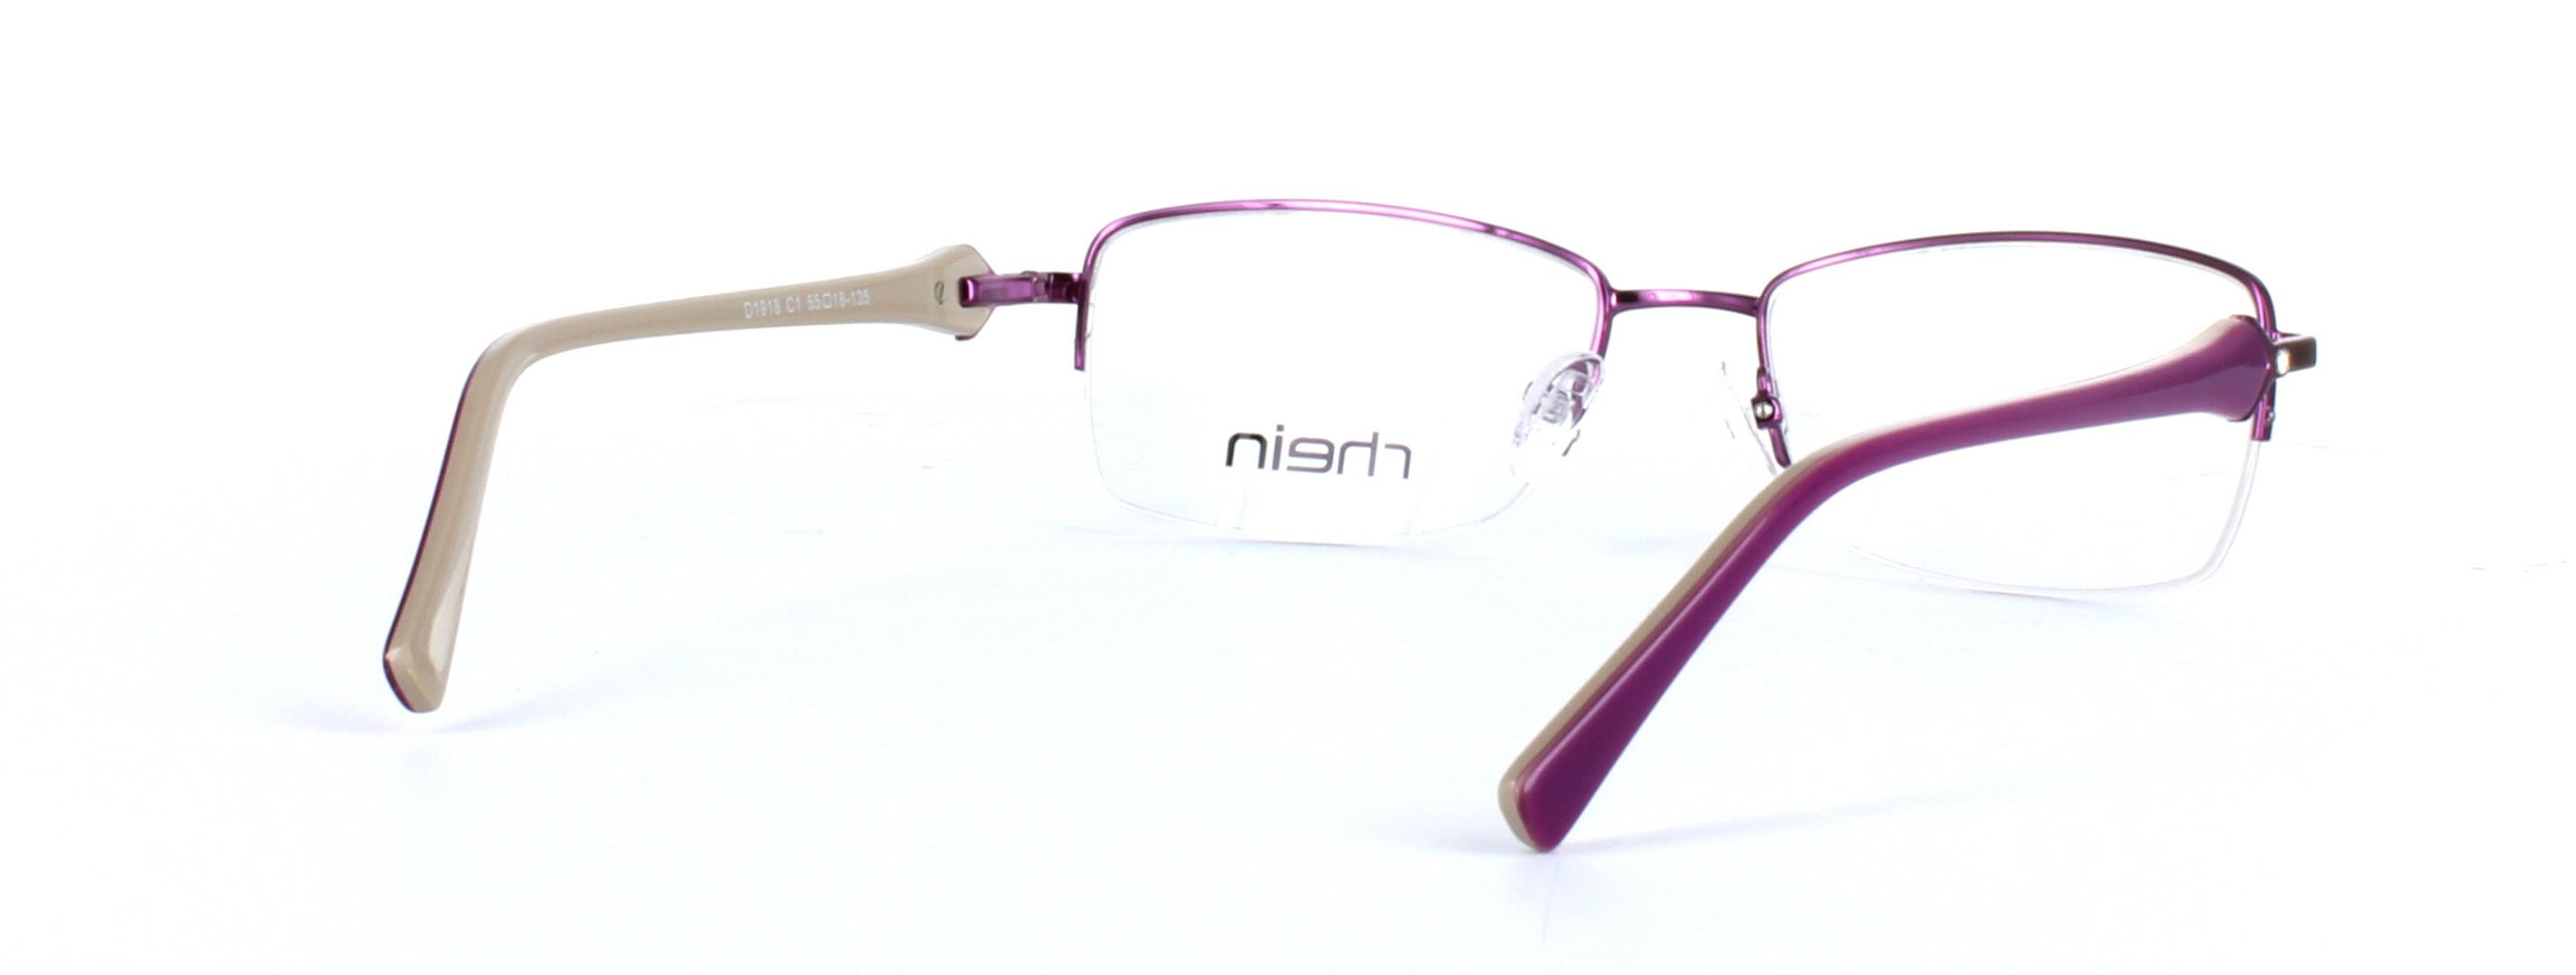 Ladies semi-rim glasses - Sloane - image 4